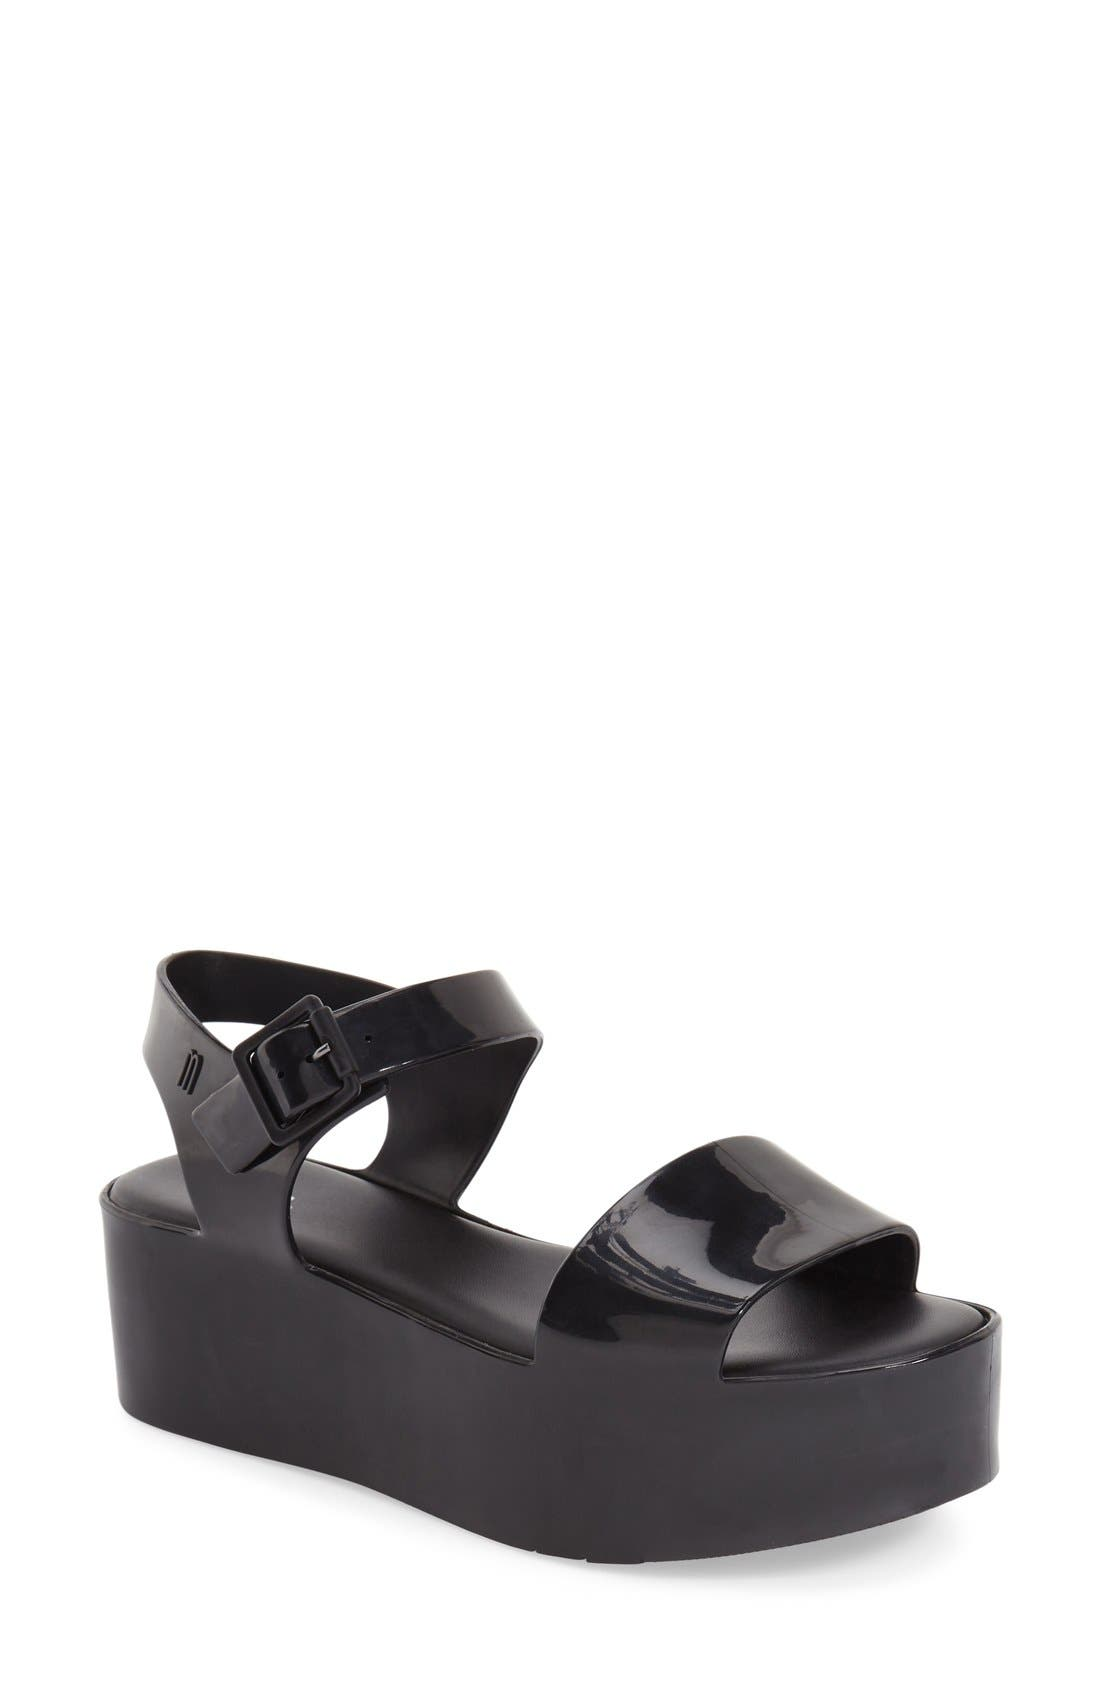 MELISSA 'Mar' Platform Sandal, Main, color, 001